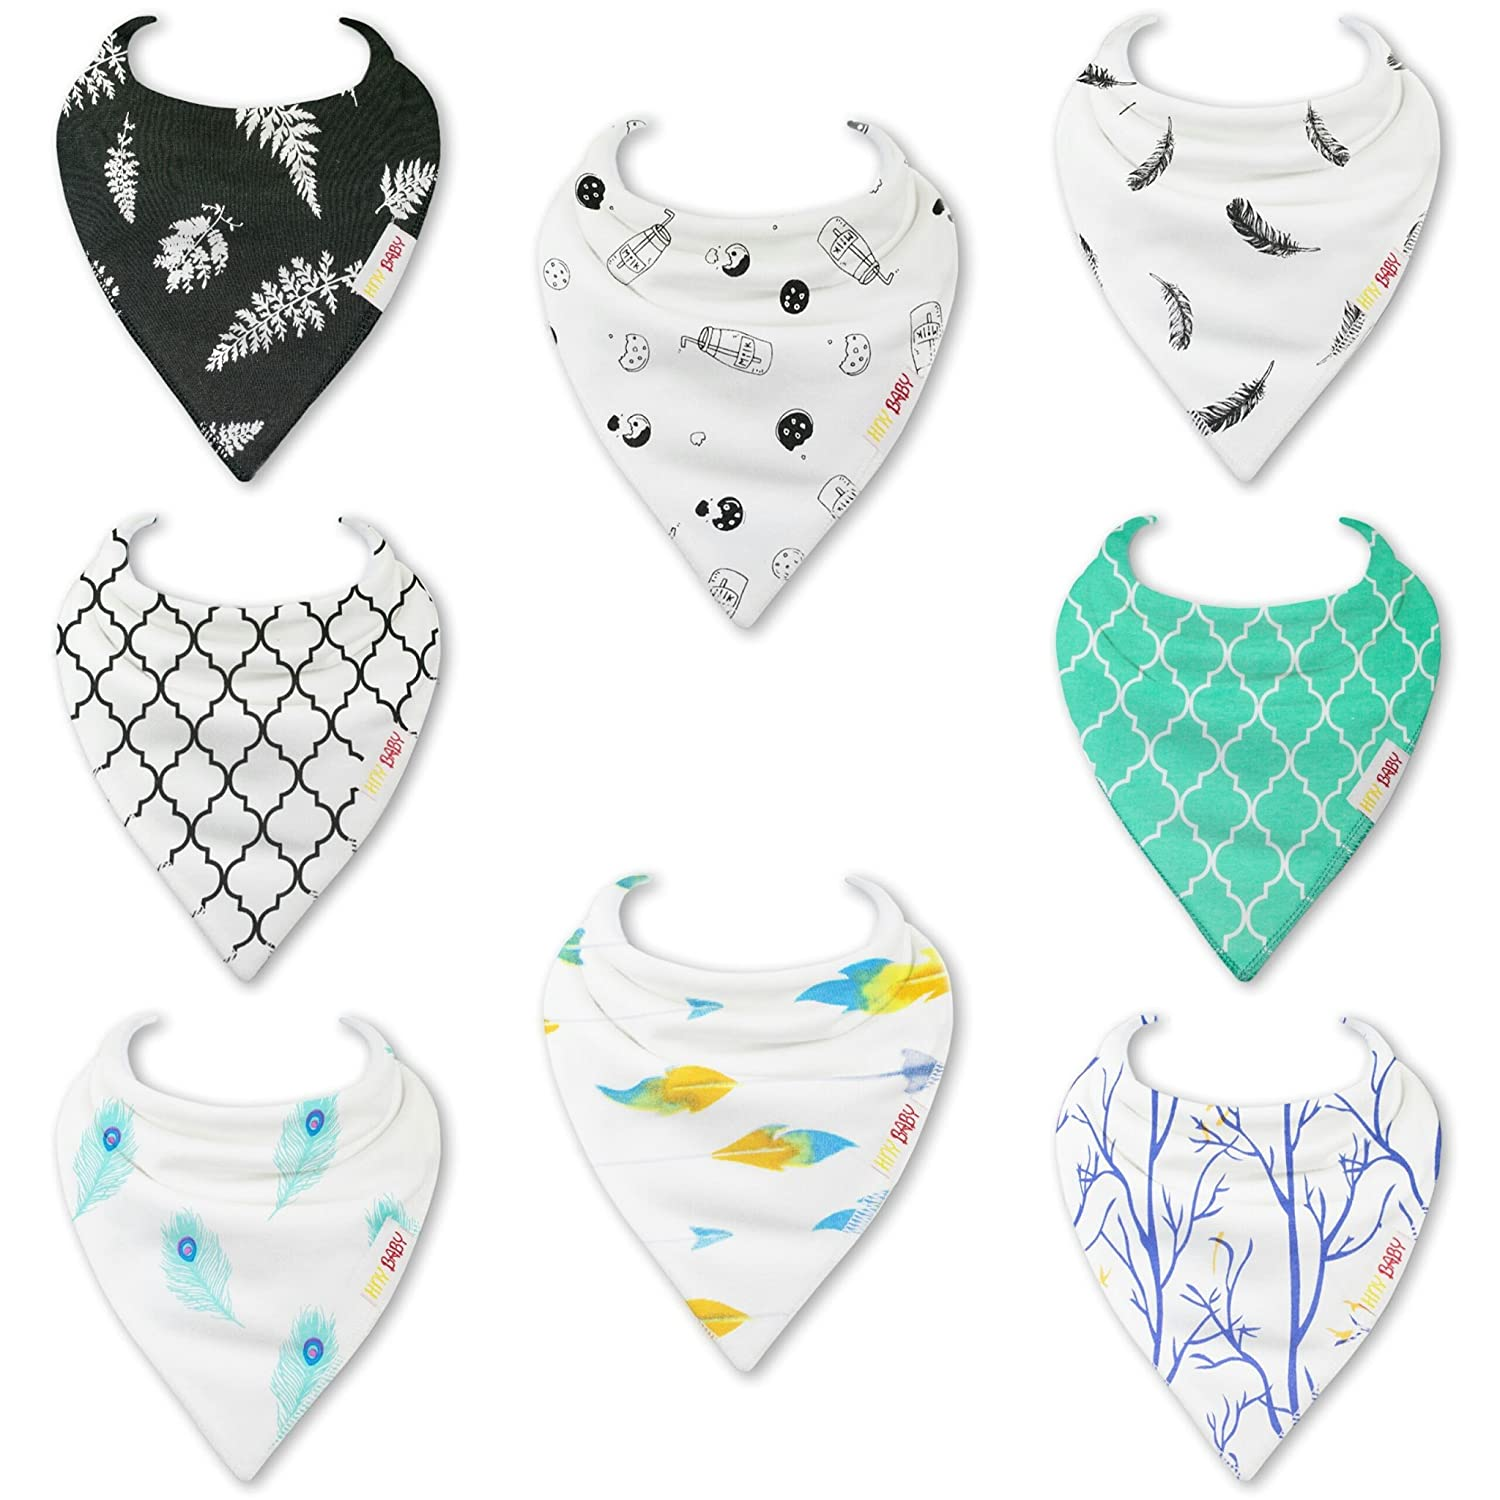 HnyBaby Baby Bandana Drool Bibs for Boys and Girls 8 PackOreo and Boho Organic Cotton with Adjustable Snaps, Drooling and Teething Bib Unisex Gift Set